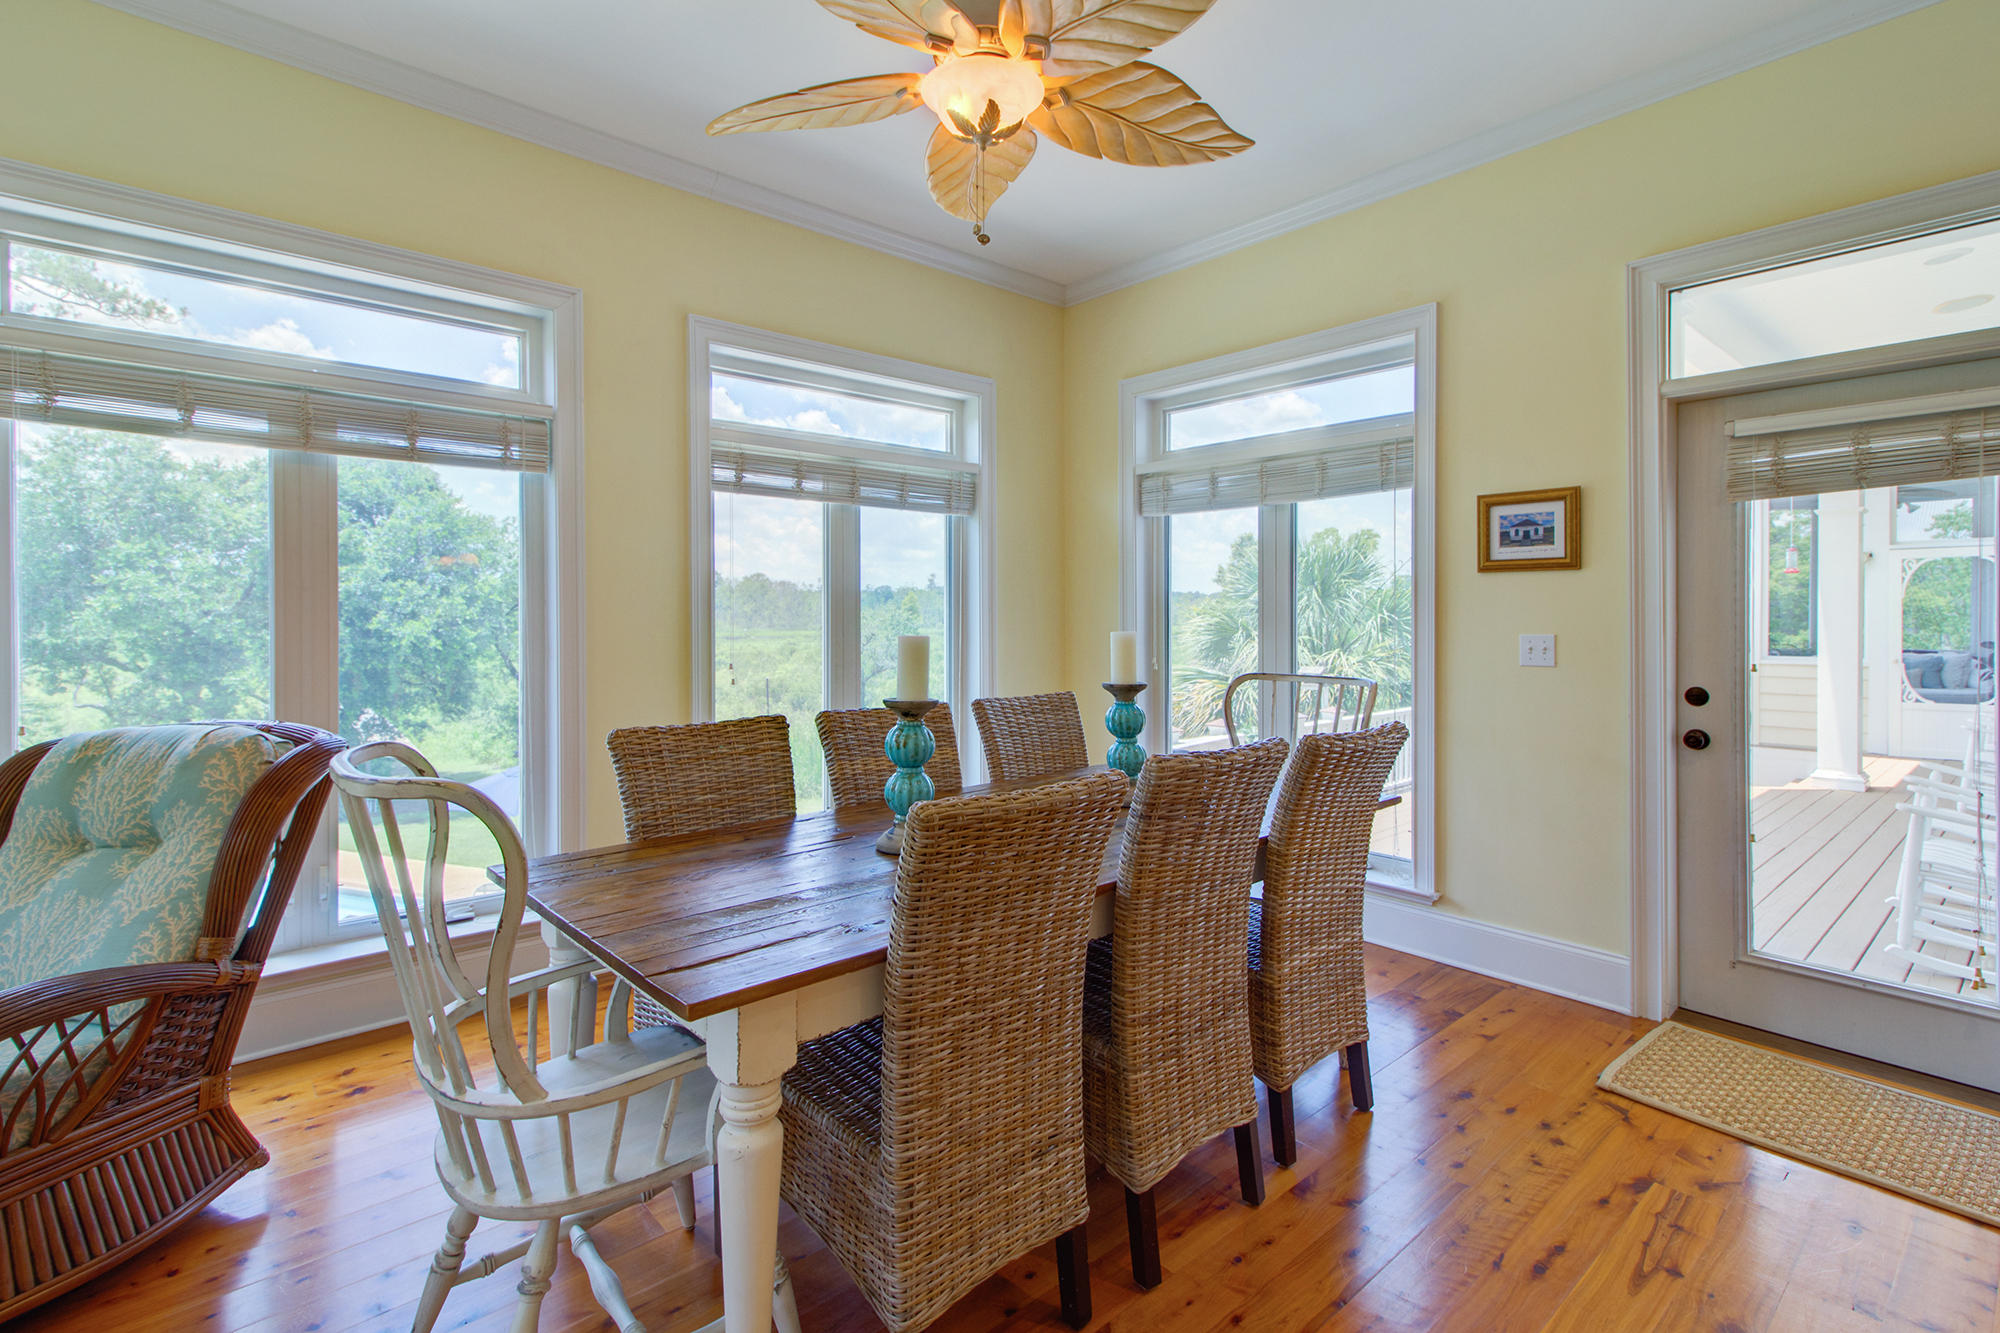 Durham Landing Homes For Sale - 240 Spotted Owl, Moncks Corner, SC - 6